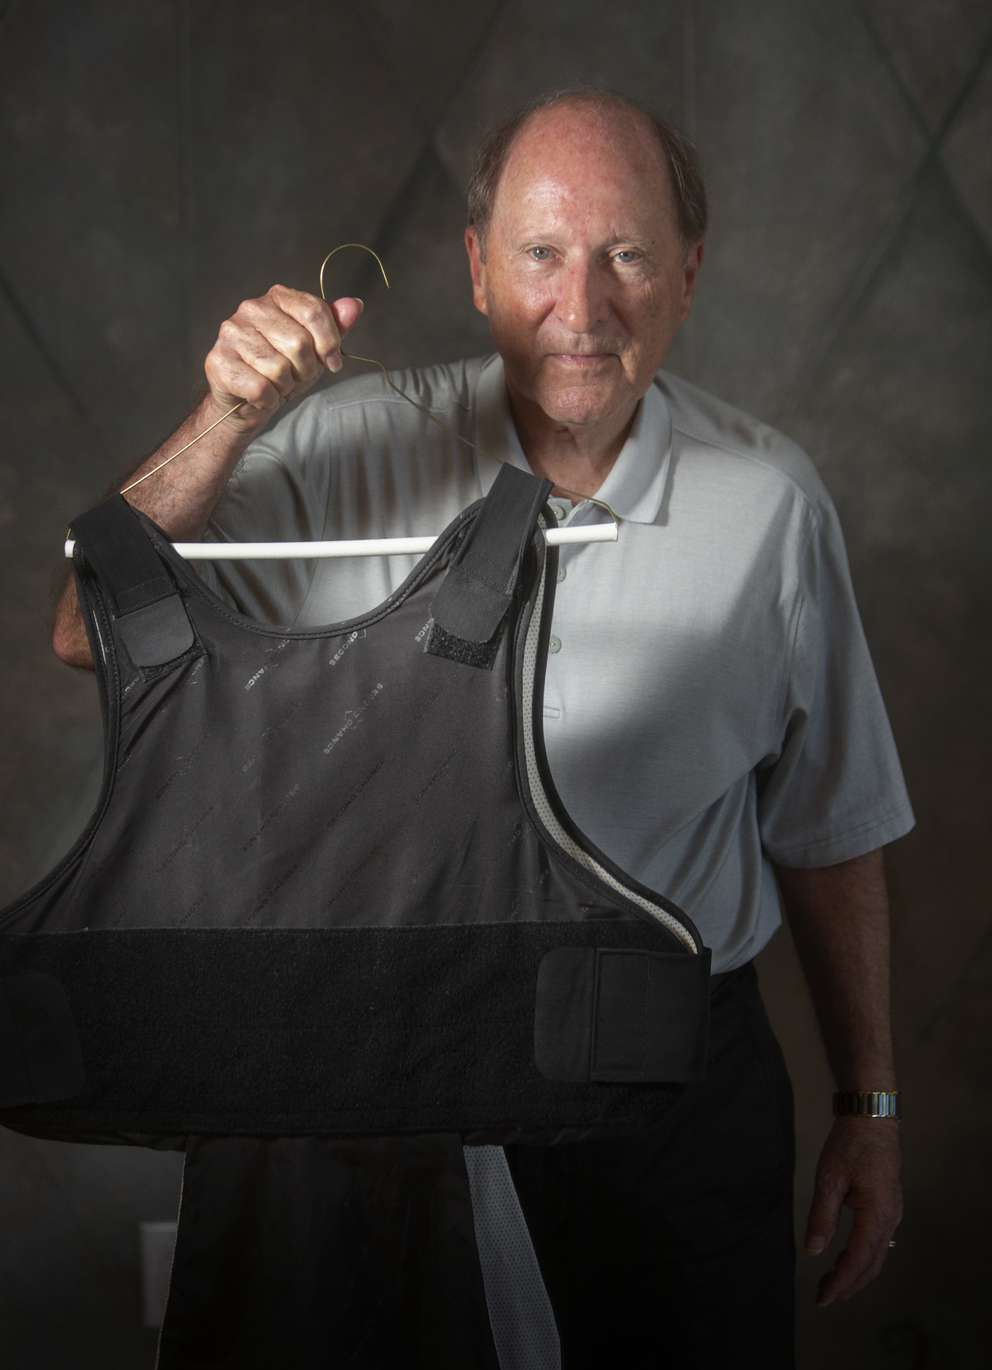 Greer poses with the bulletproof vest he wore while presiding over the Schiavo case. [JOHN PENDYGRAFT | Times]